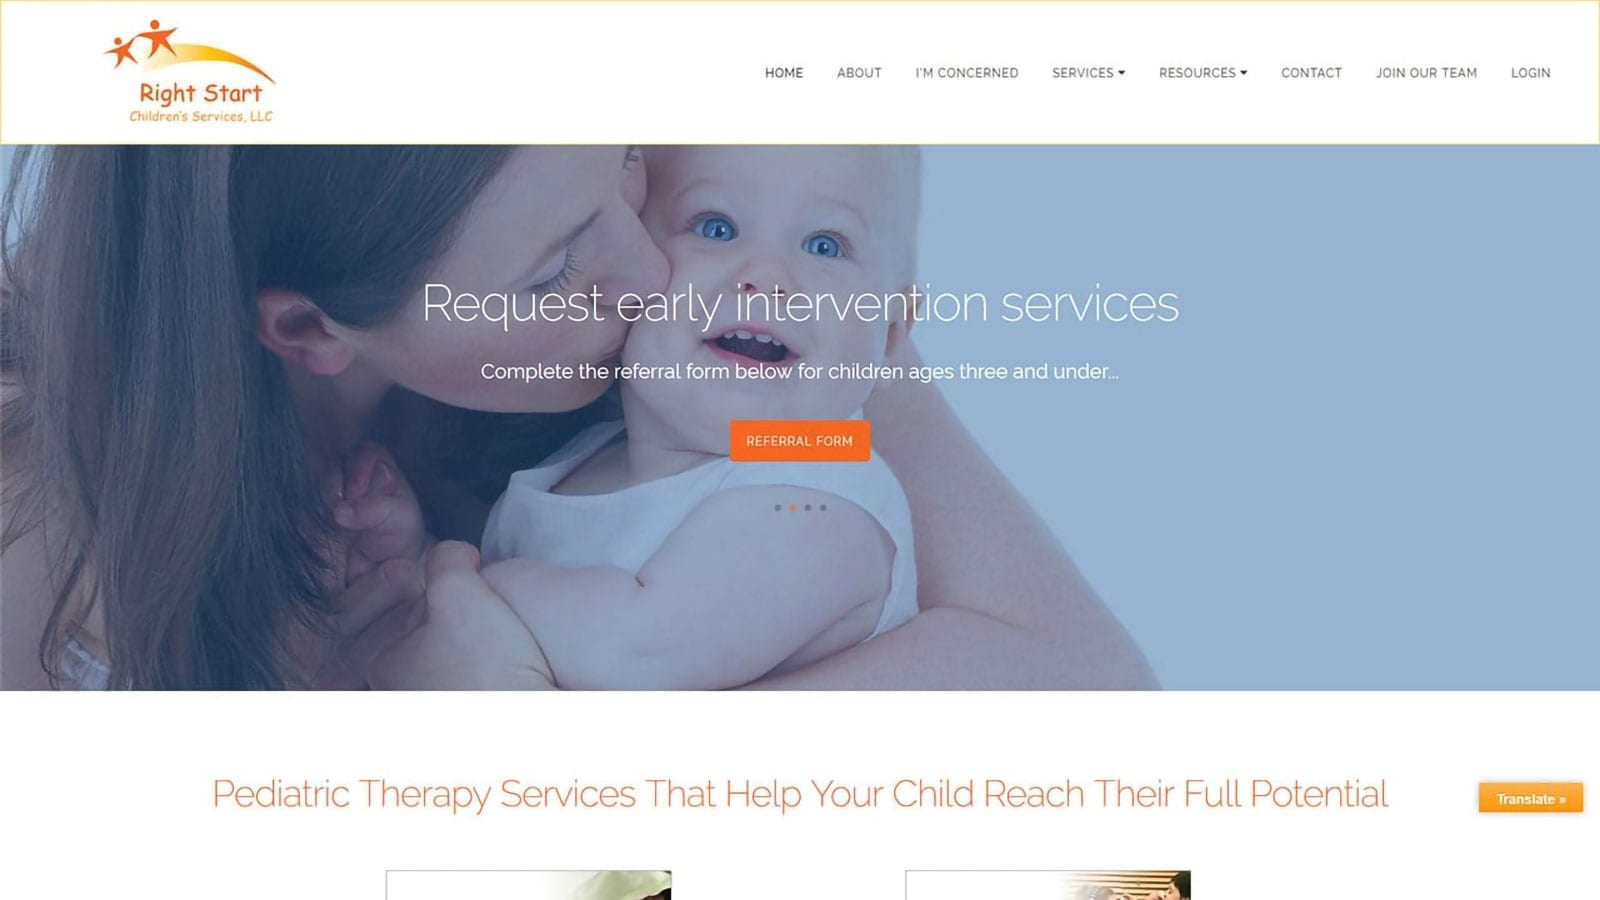 Right Start Children's Services website